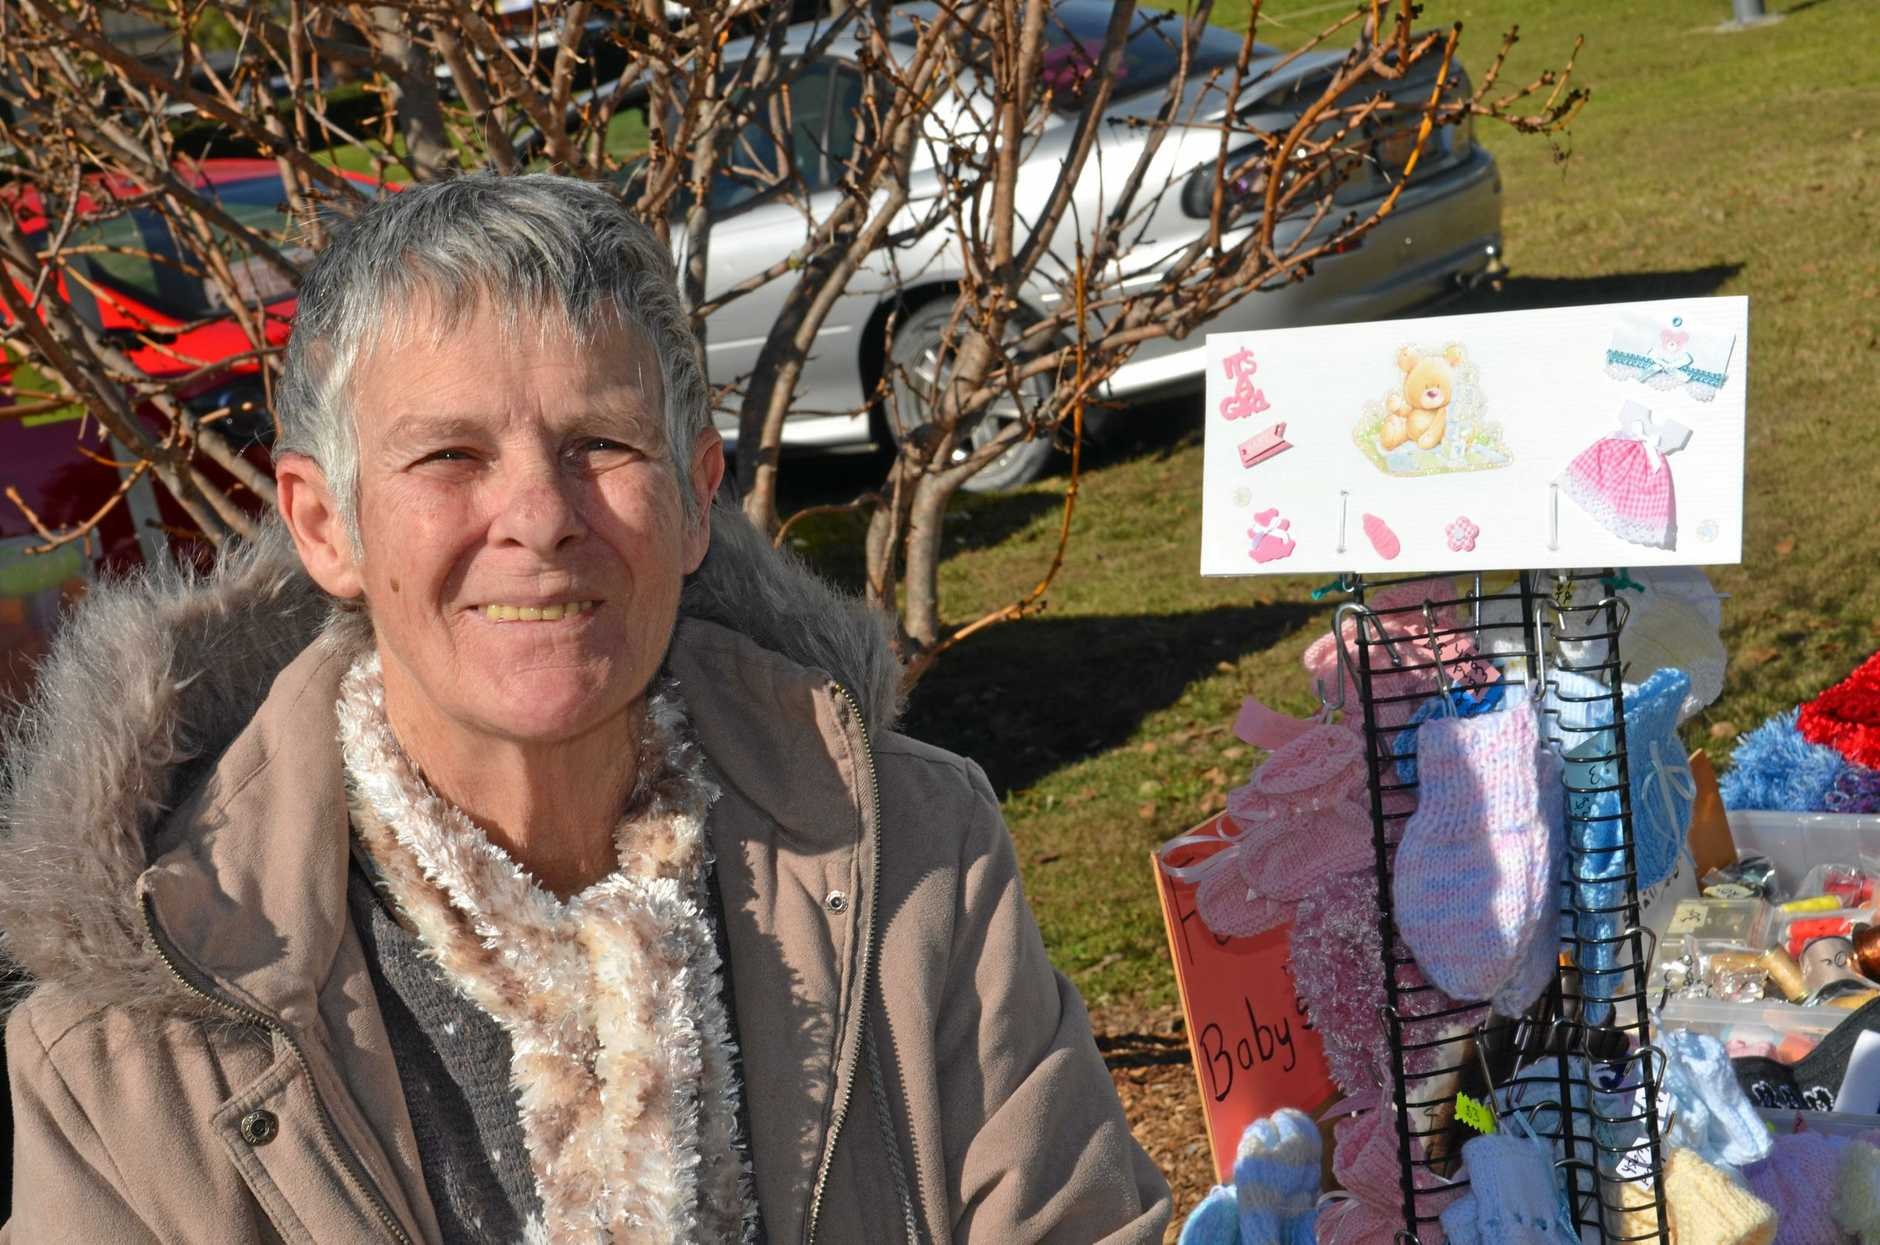 GENEROUS HEART: Maggie Kask sells her hand-knitted items for her charity which helps get people back on their feet.